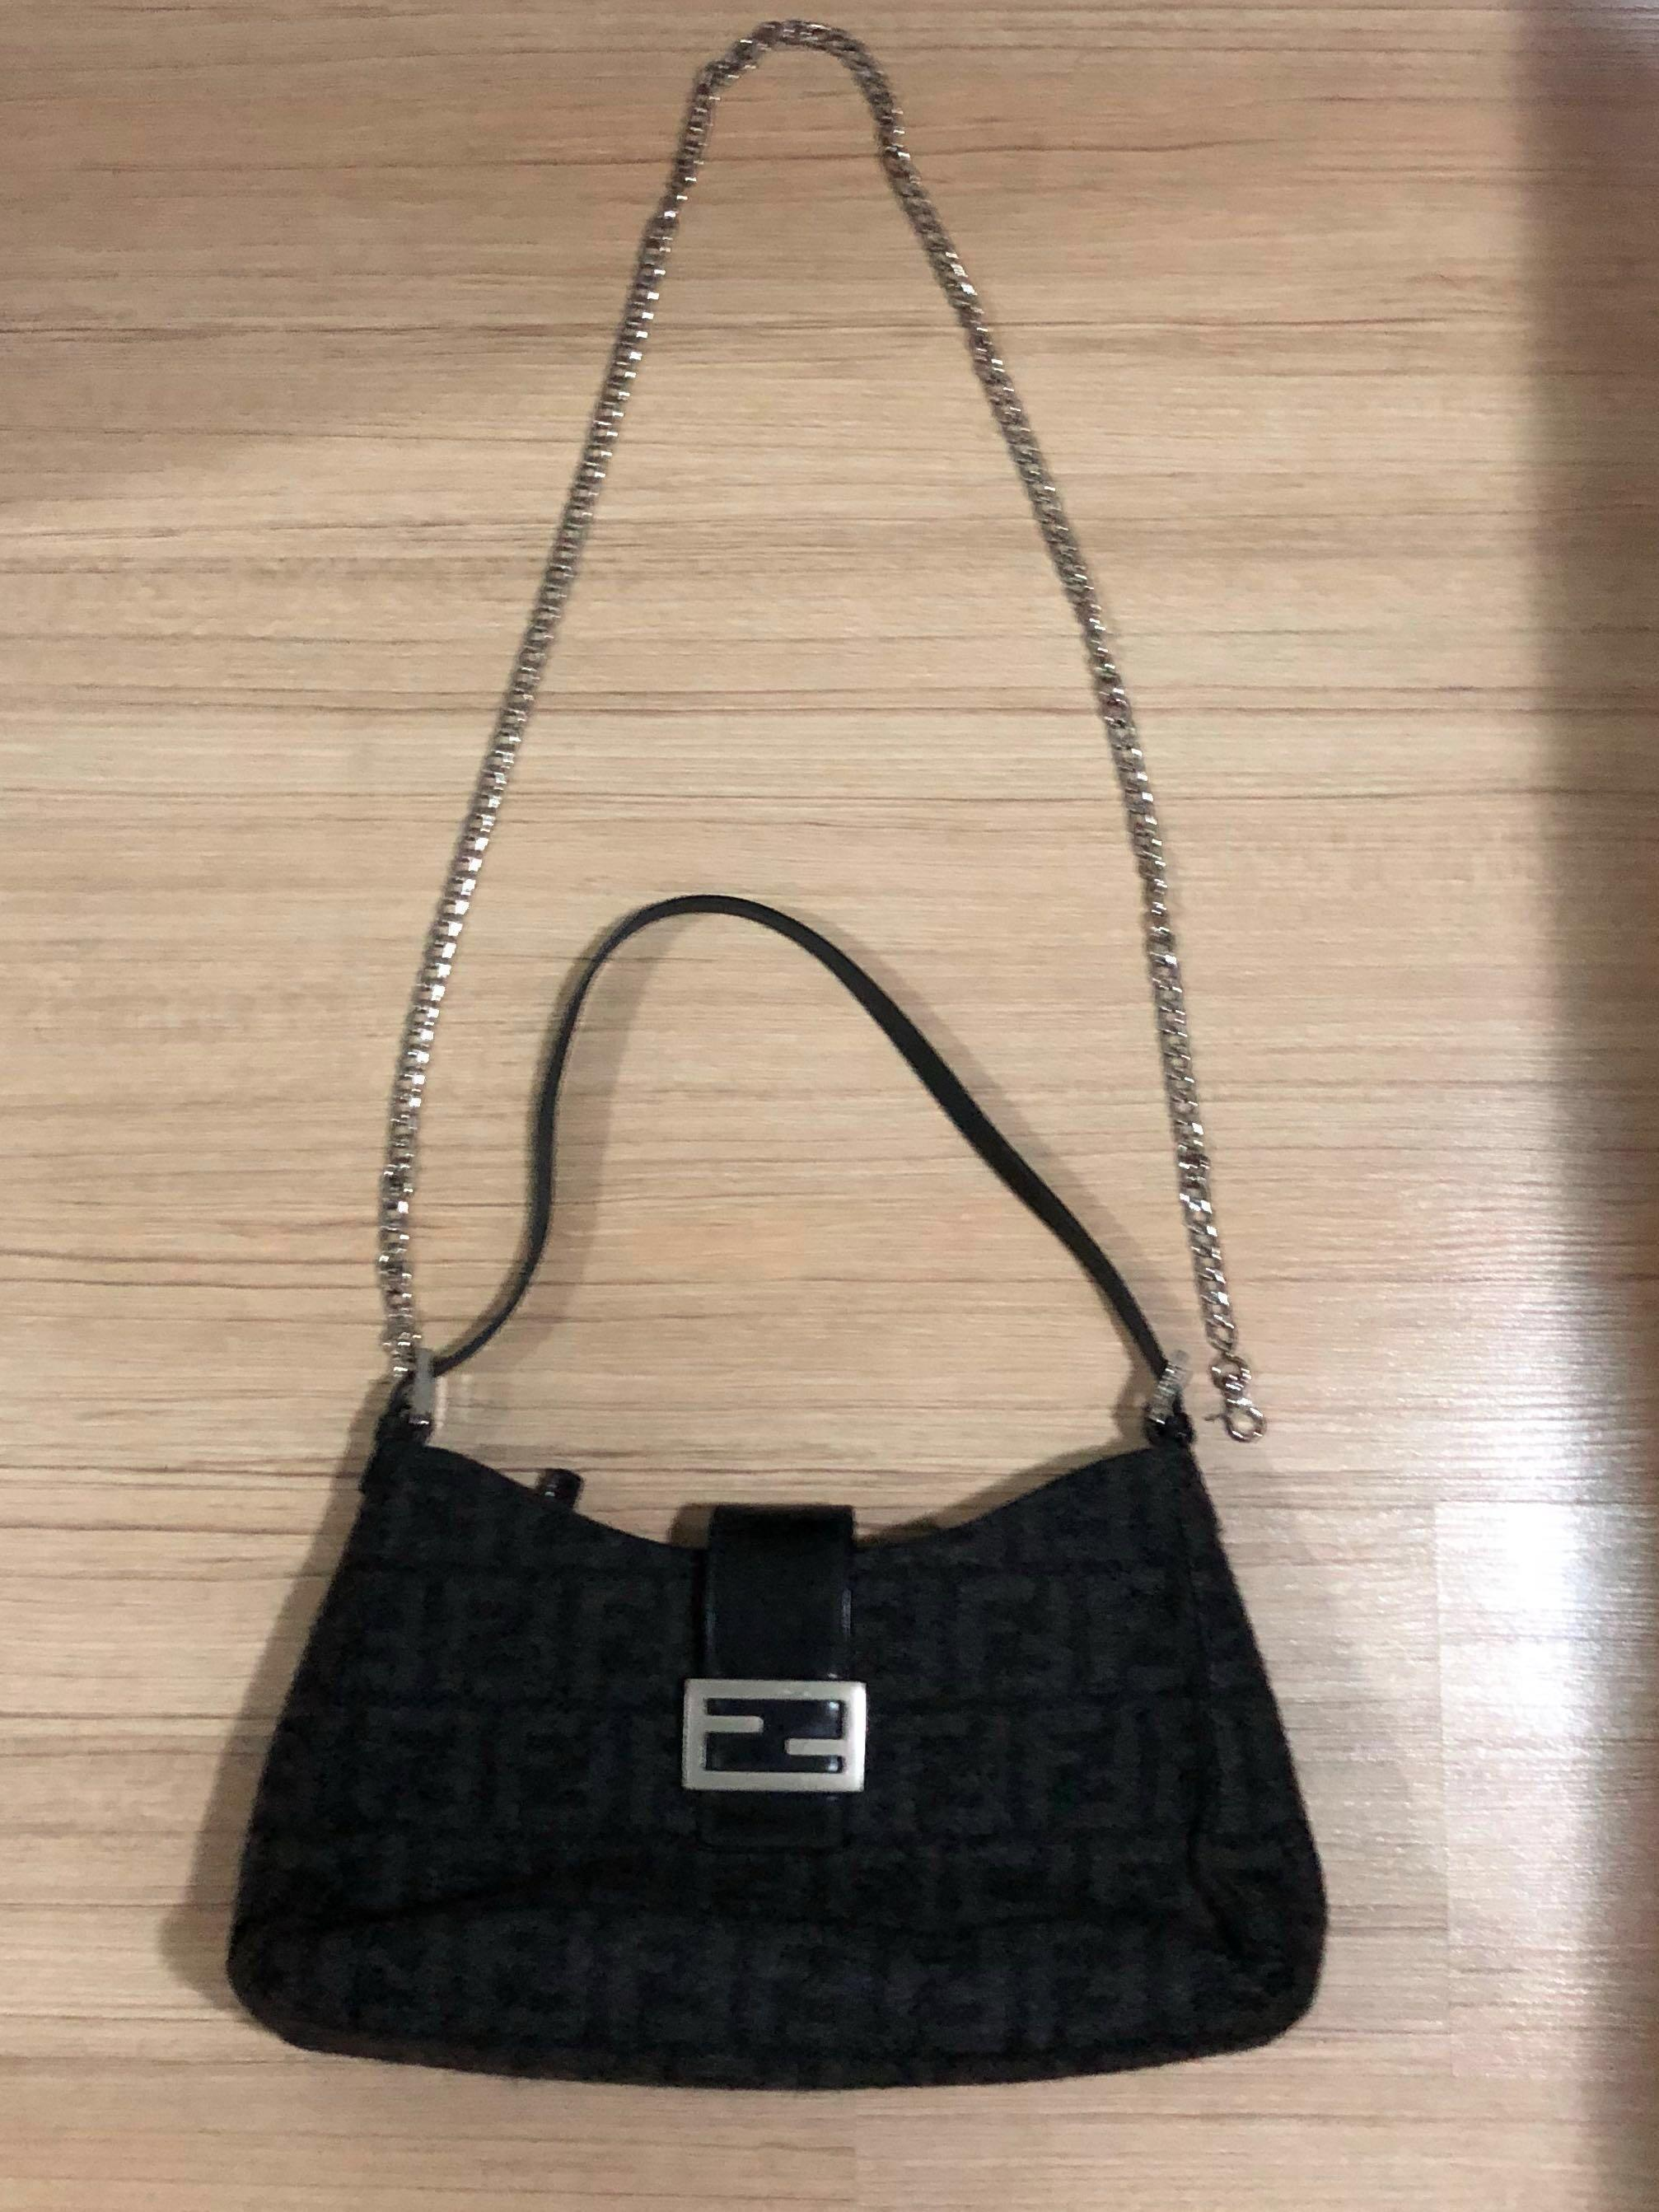 Authentic Fendi Bag